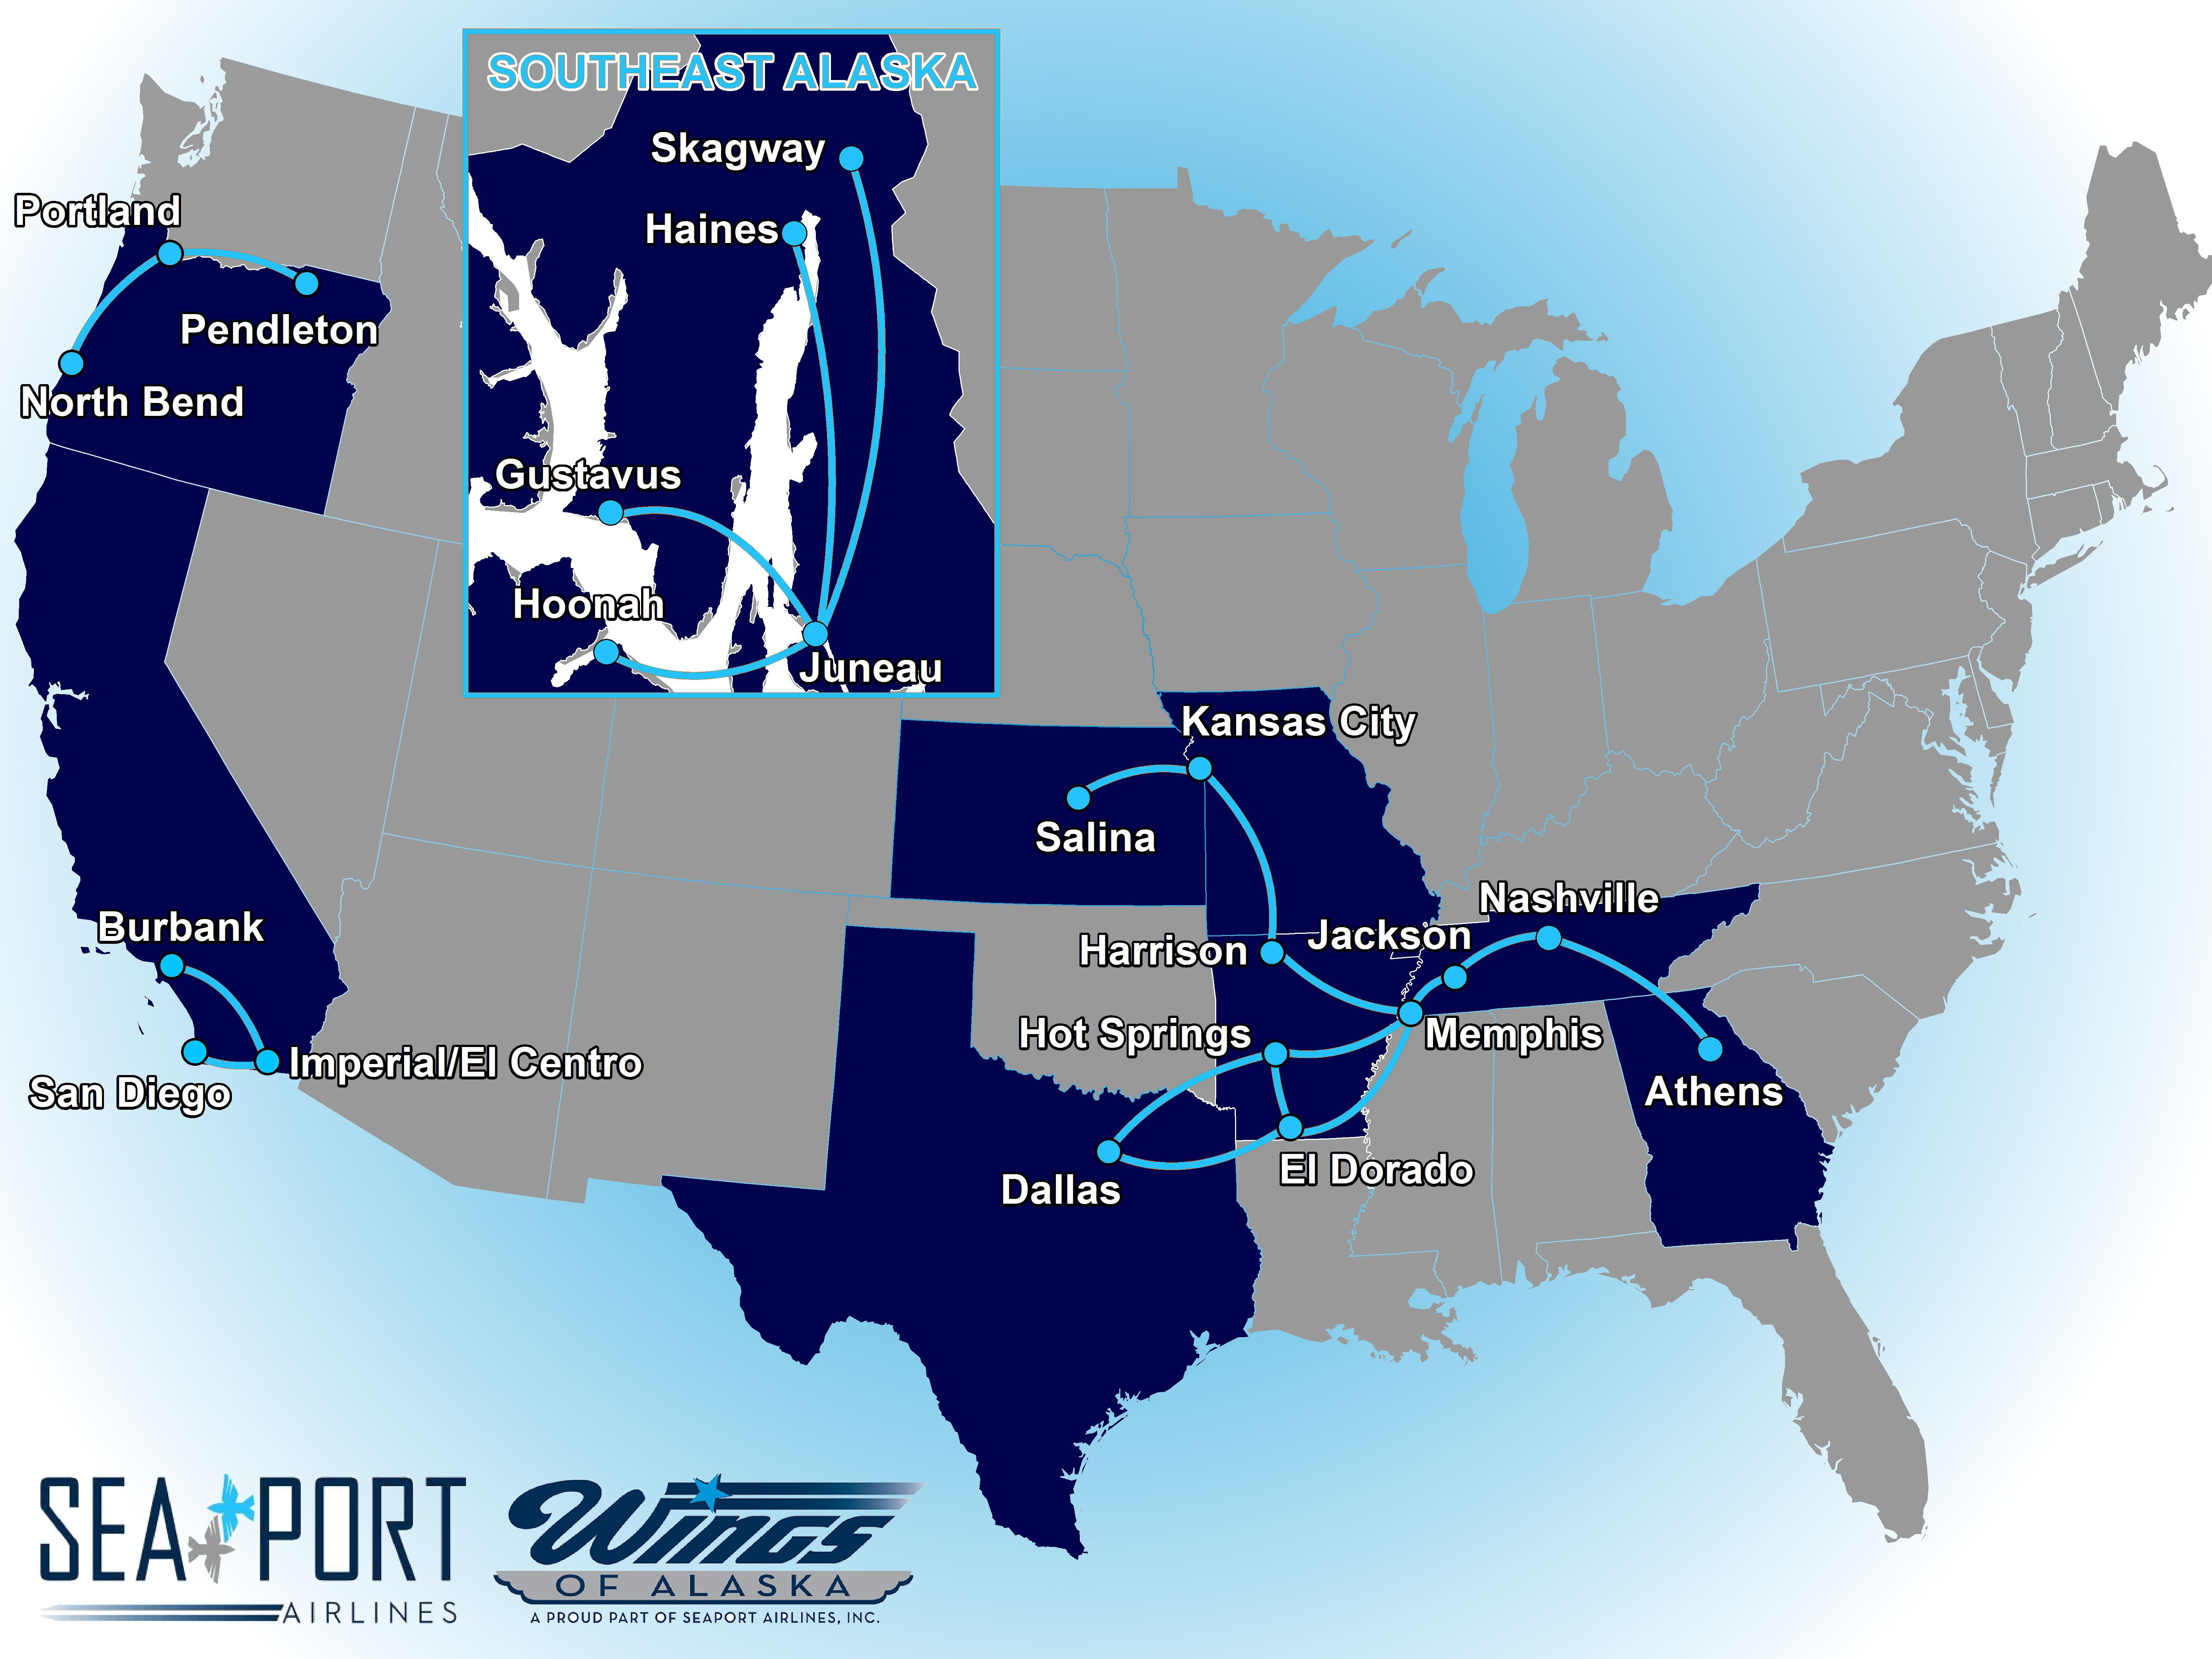 Best Historic Airline Route Maps Images On Pinterest - Us airways travel map